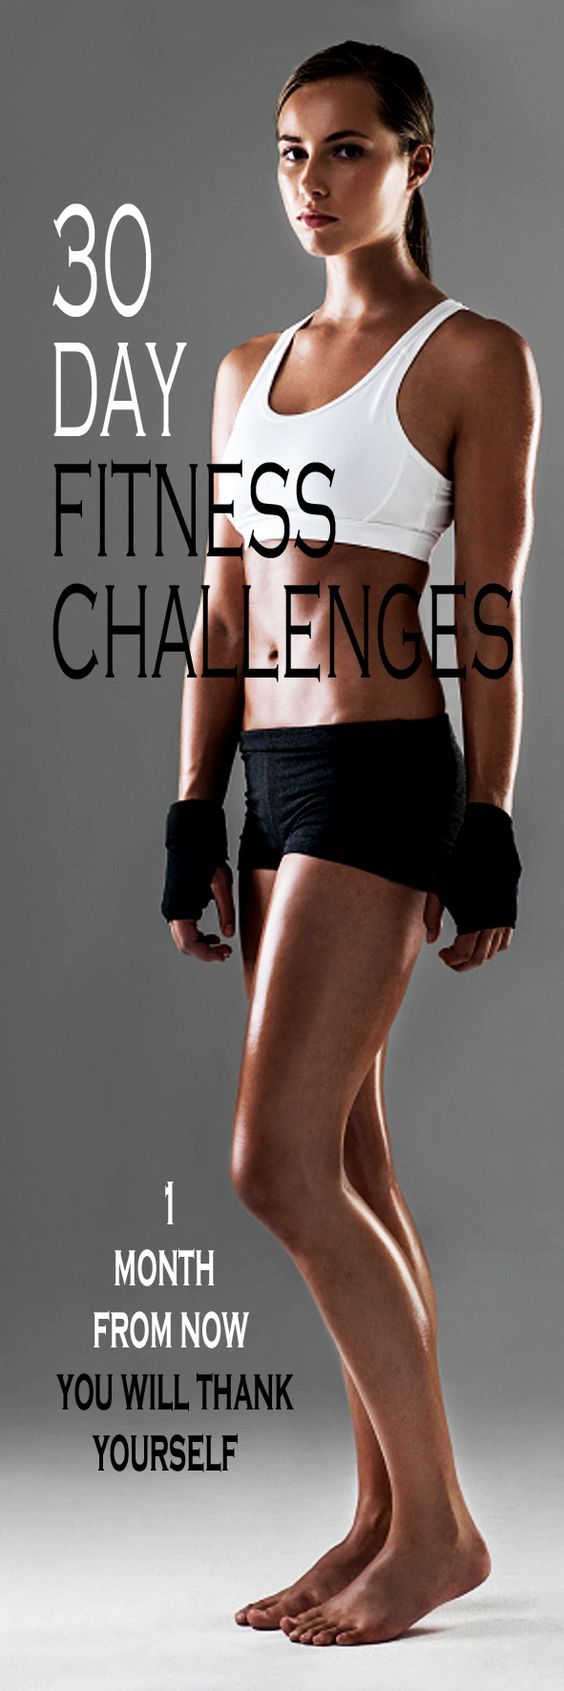 Free, printable & easy to follow 30 day fitness CHALLENGES. Pick one of the total body workout plans (fat burn, summer body, running challenges) or target your trouble zones (muffin top, abs, core, thighs, arms, glutes…) Get fitter, leaner and stronger in just one month!